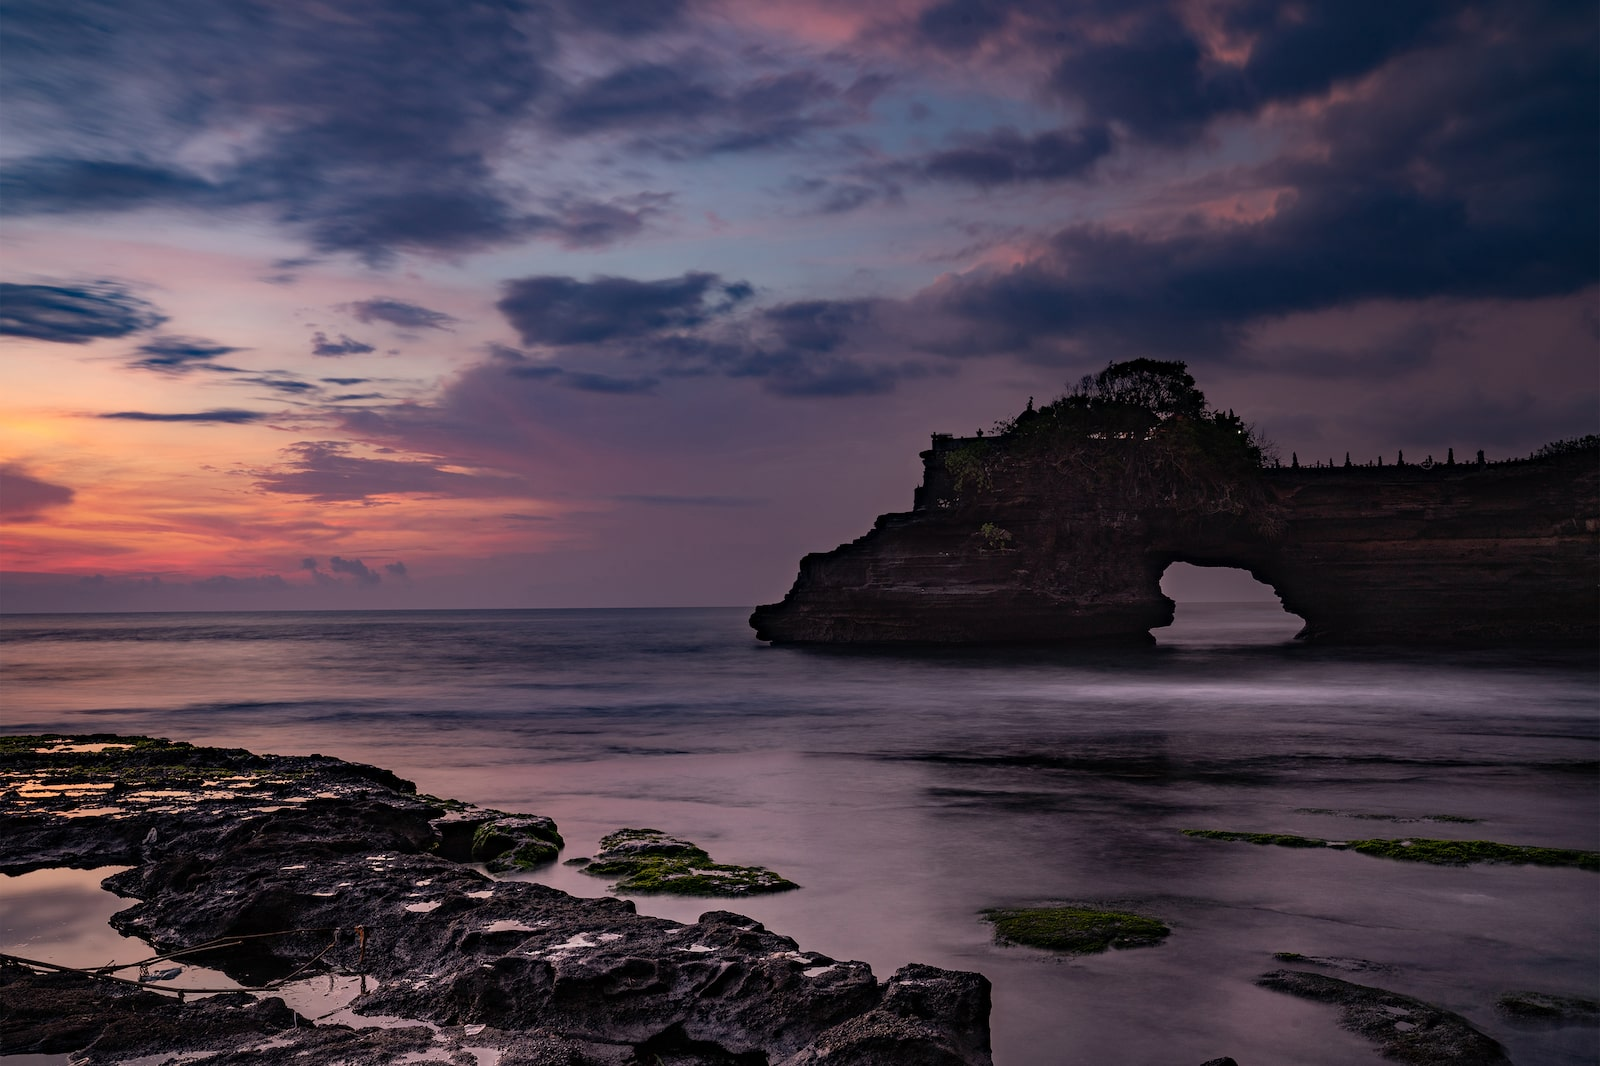 Purple sunset by the sea in Bali